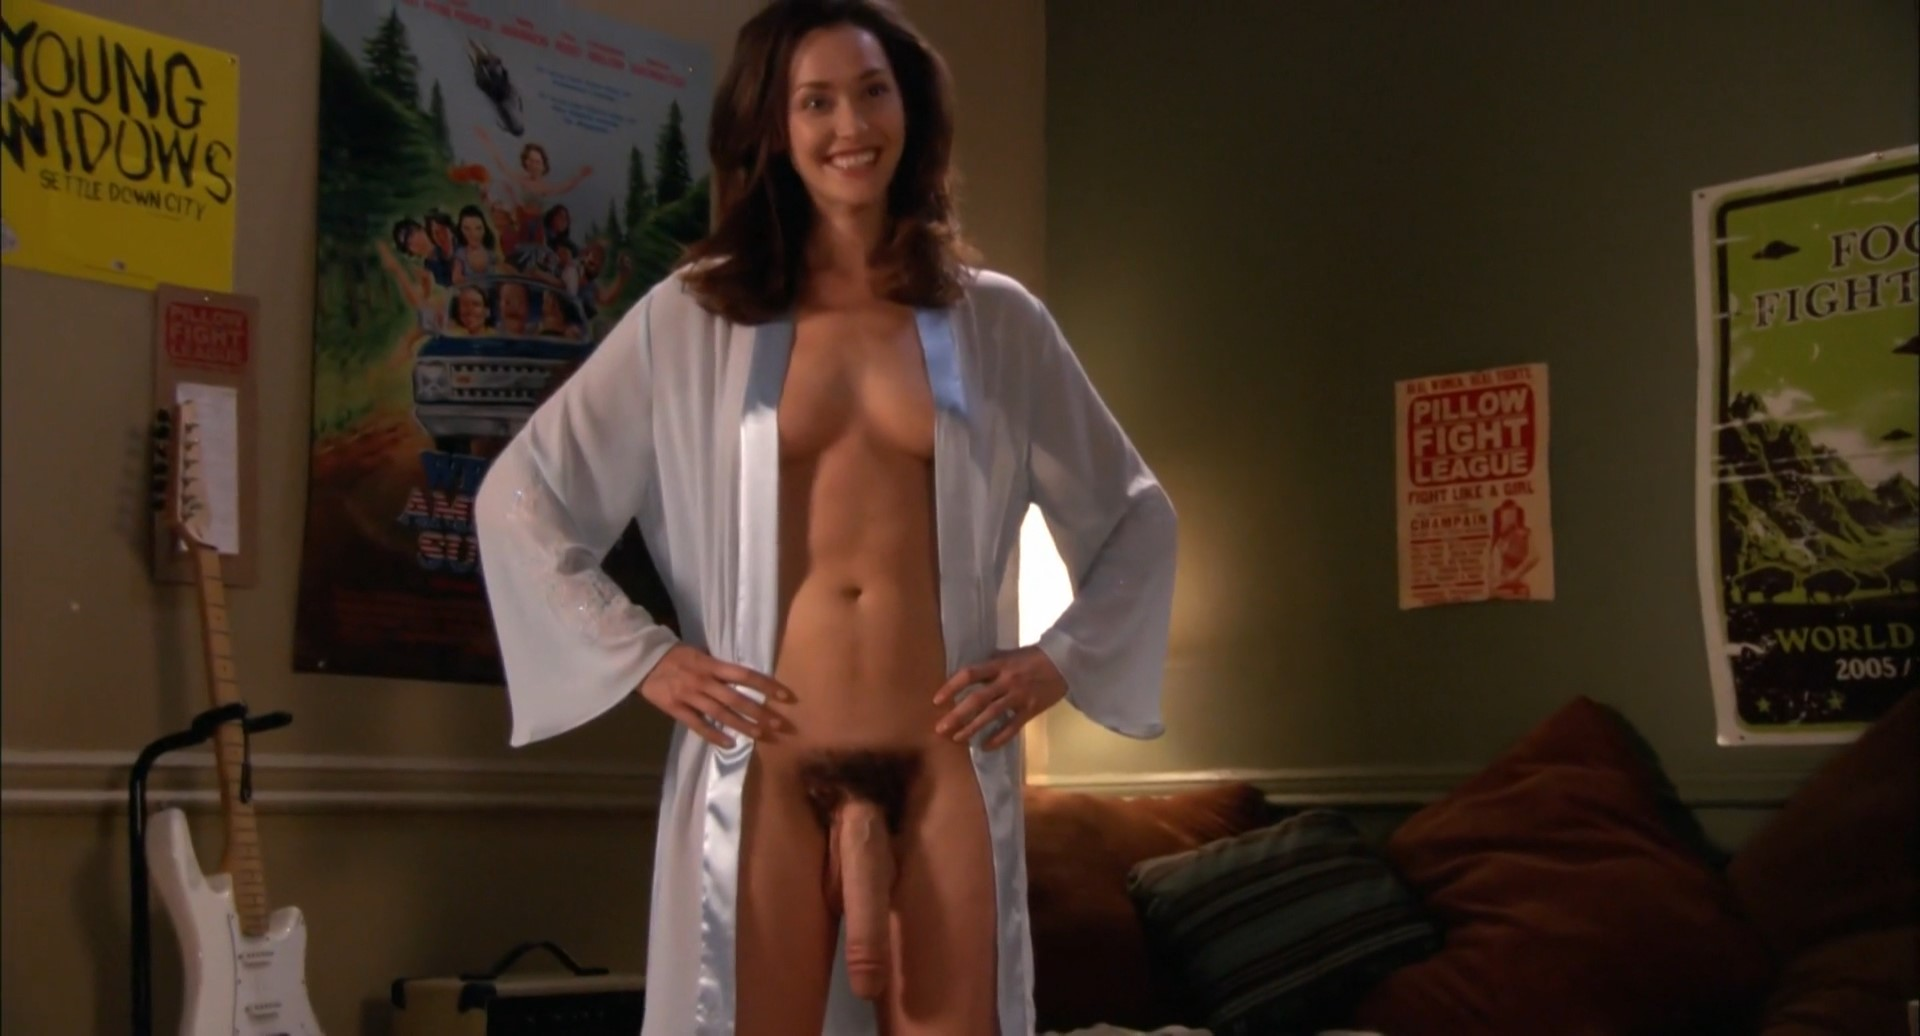 American Pie Nackt movie nudity » page 277 » celebs nude video - nudecelebvideo